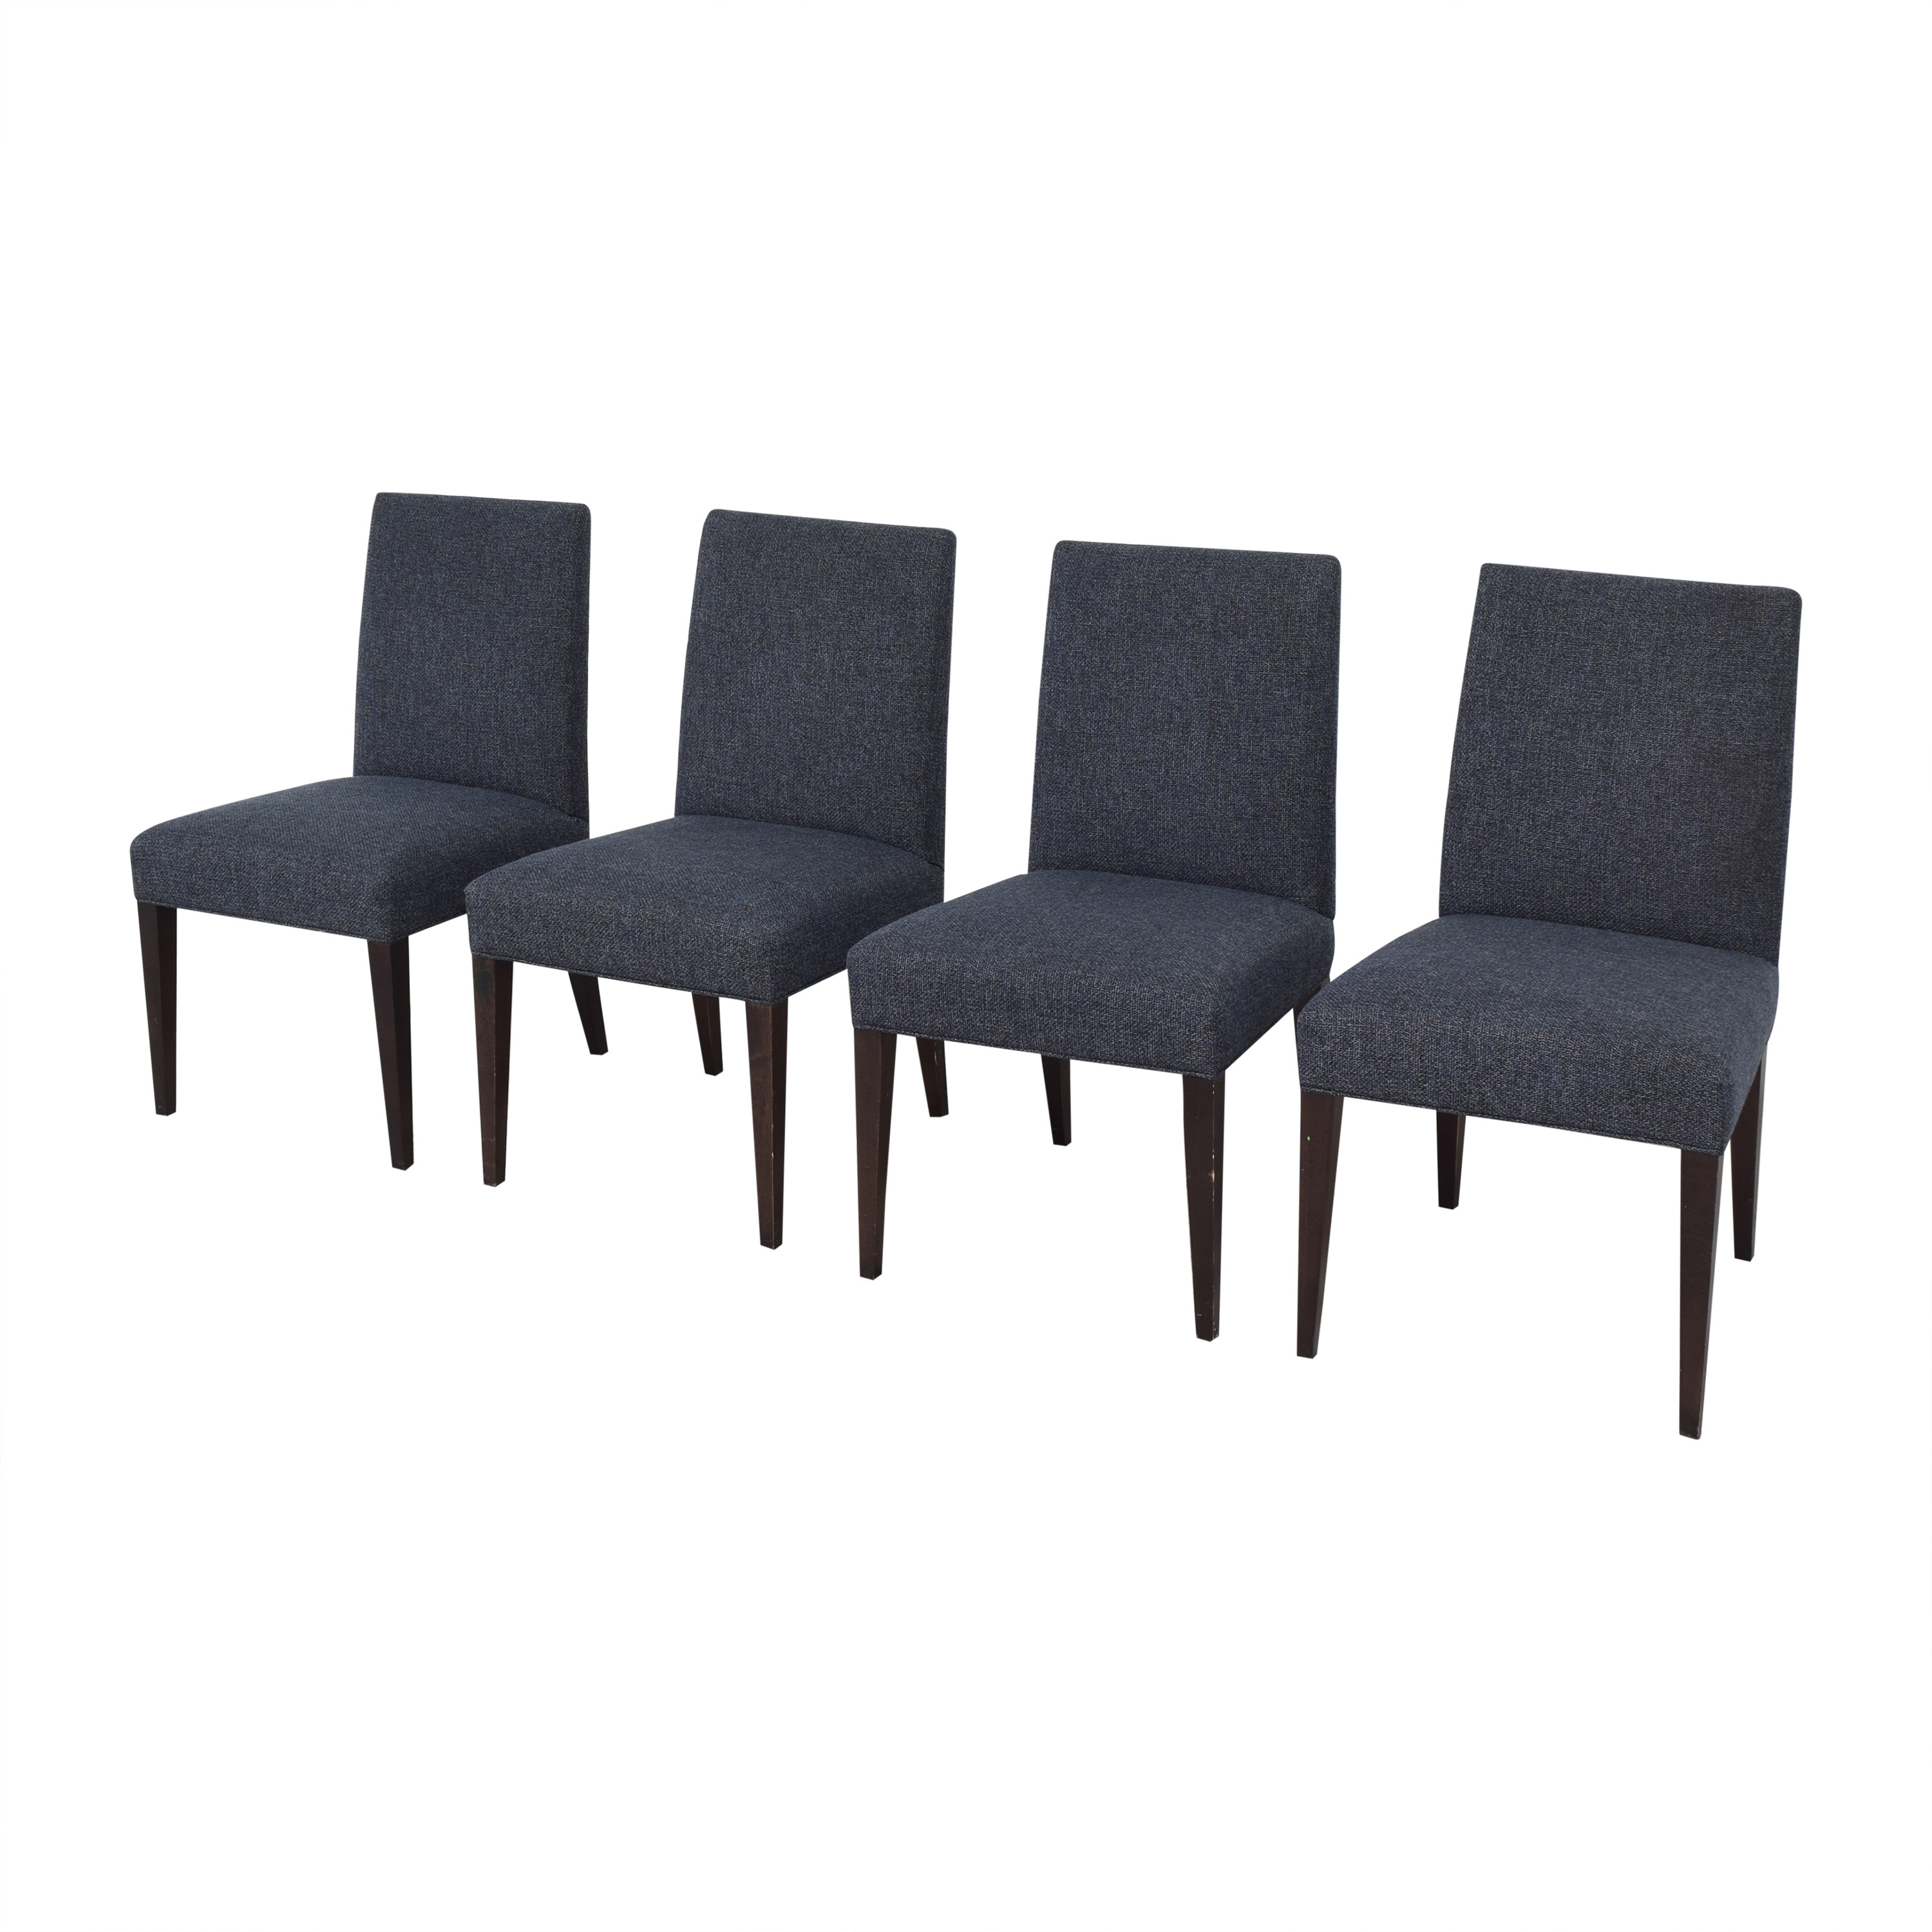 shop Crate & Barrel Miles Upholstered Dining Chairs Crate & Barrel Chairs